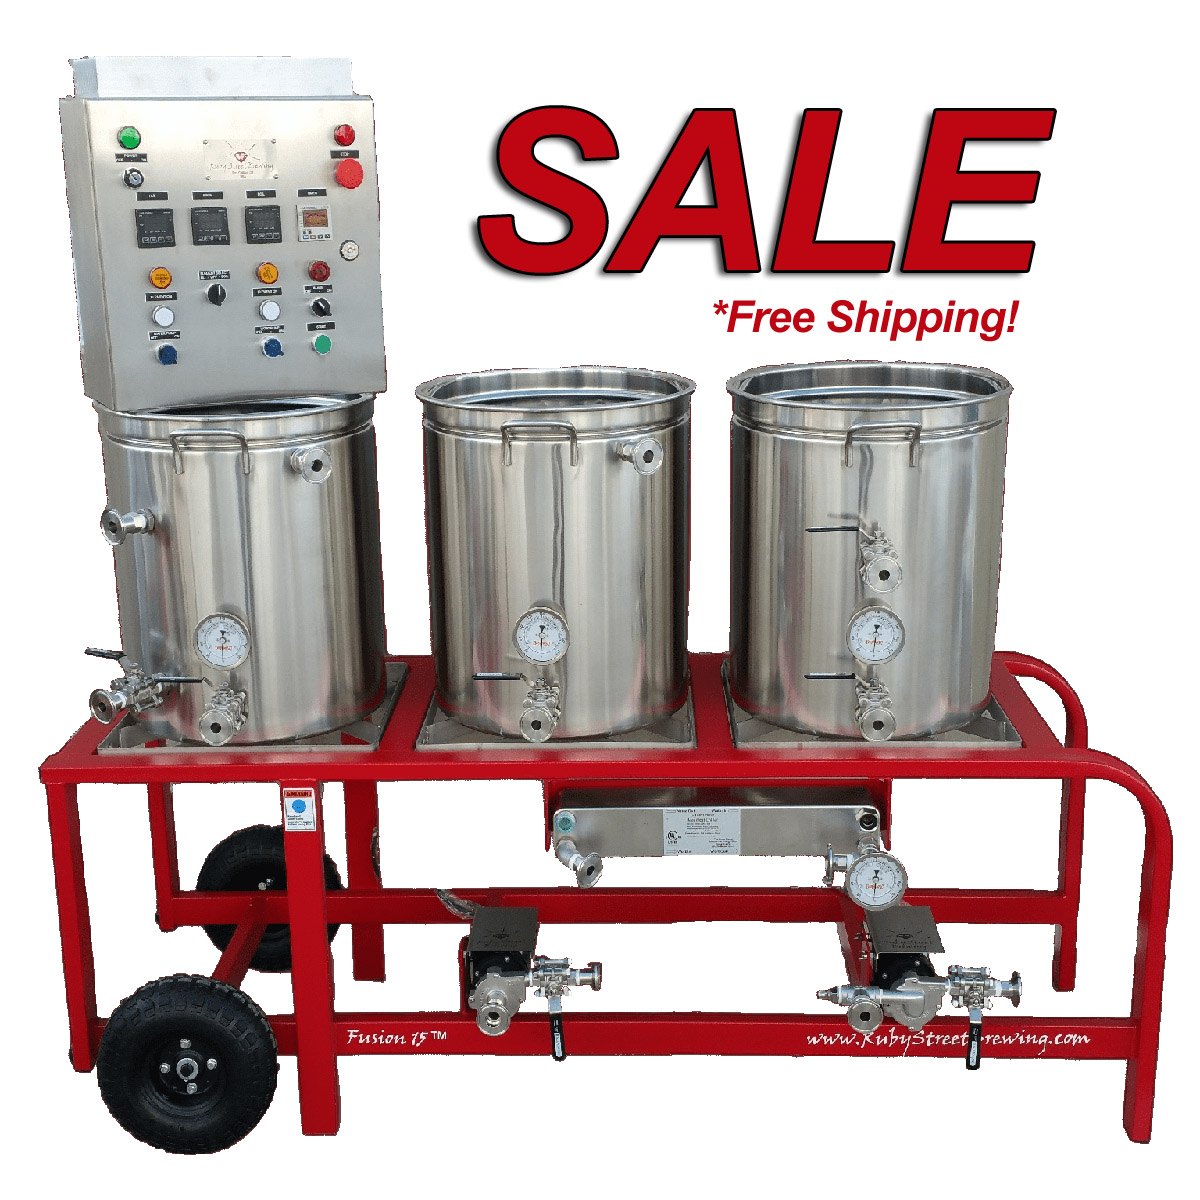 Adventures In Homebrewing Save up to $250 and get Free Shipping on Ruby Street Homebrewing Systems Sale